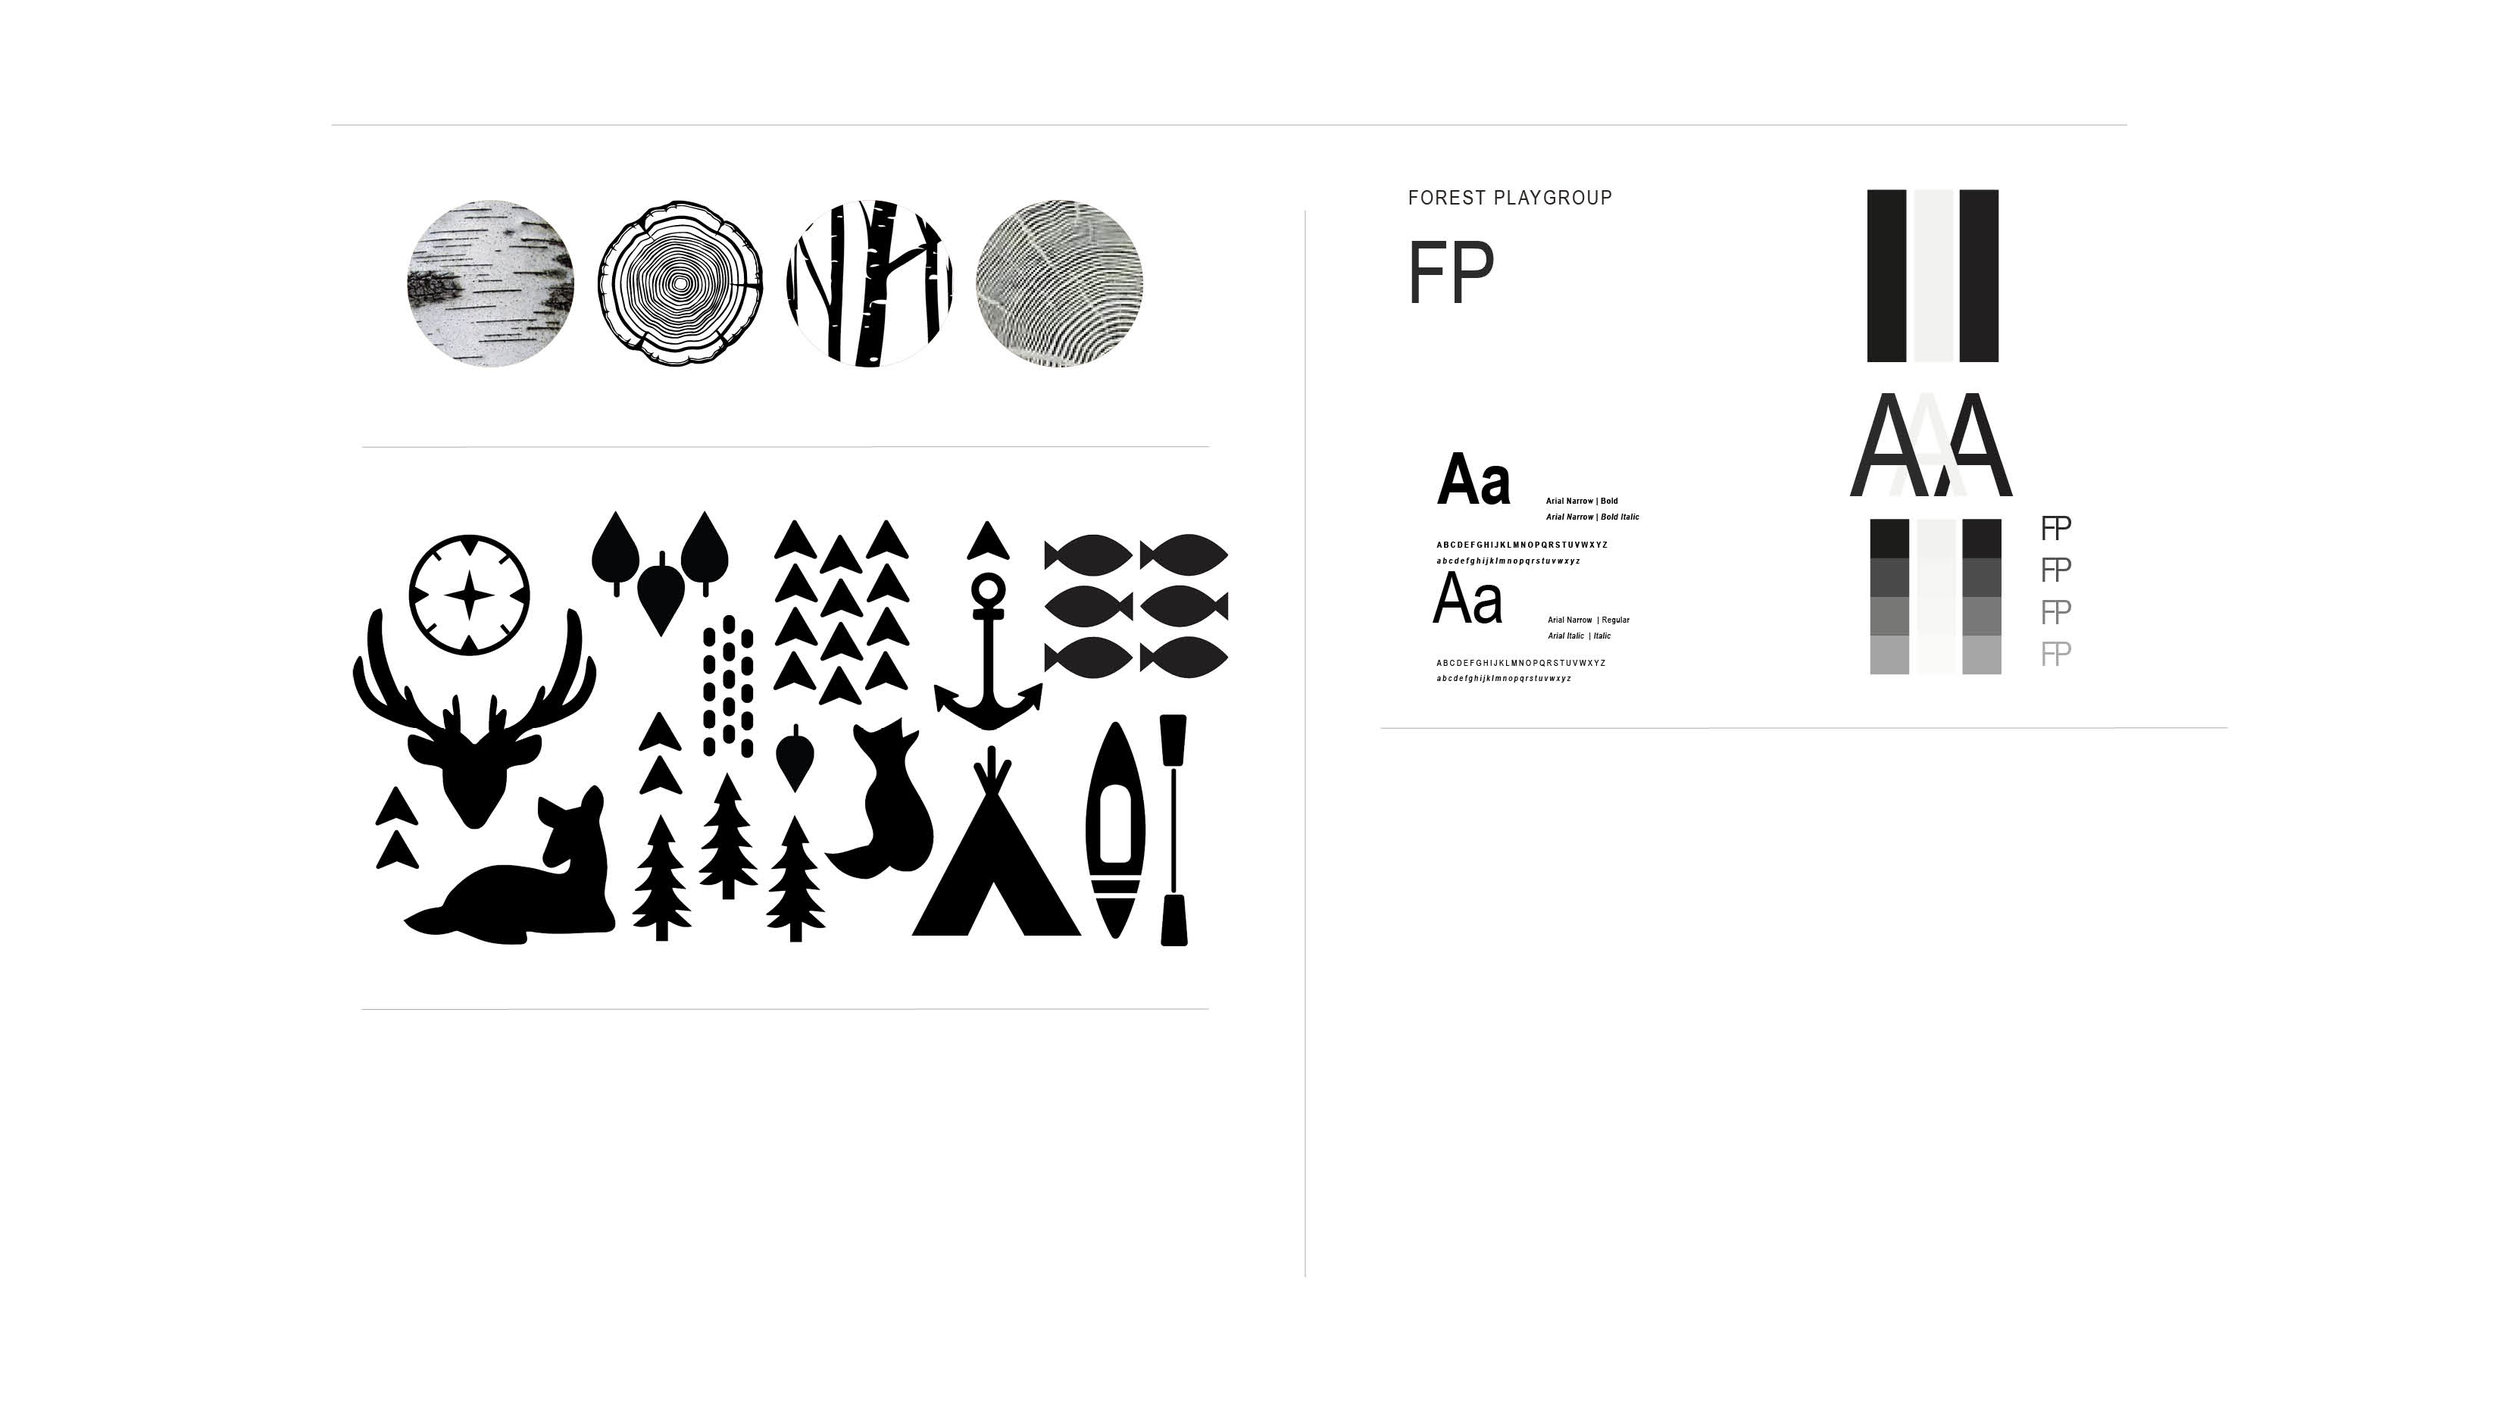 Typography and illustrations were paired by Stephanie Wencl for Forest Playgroup Branding.